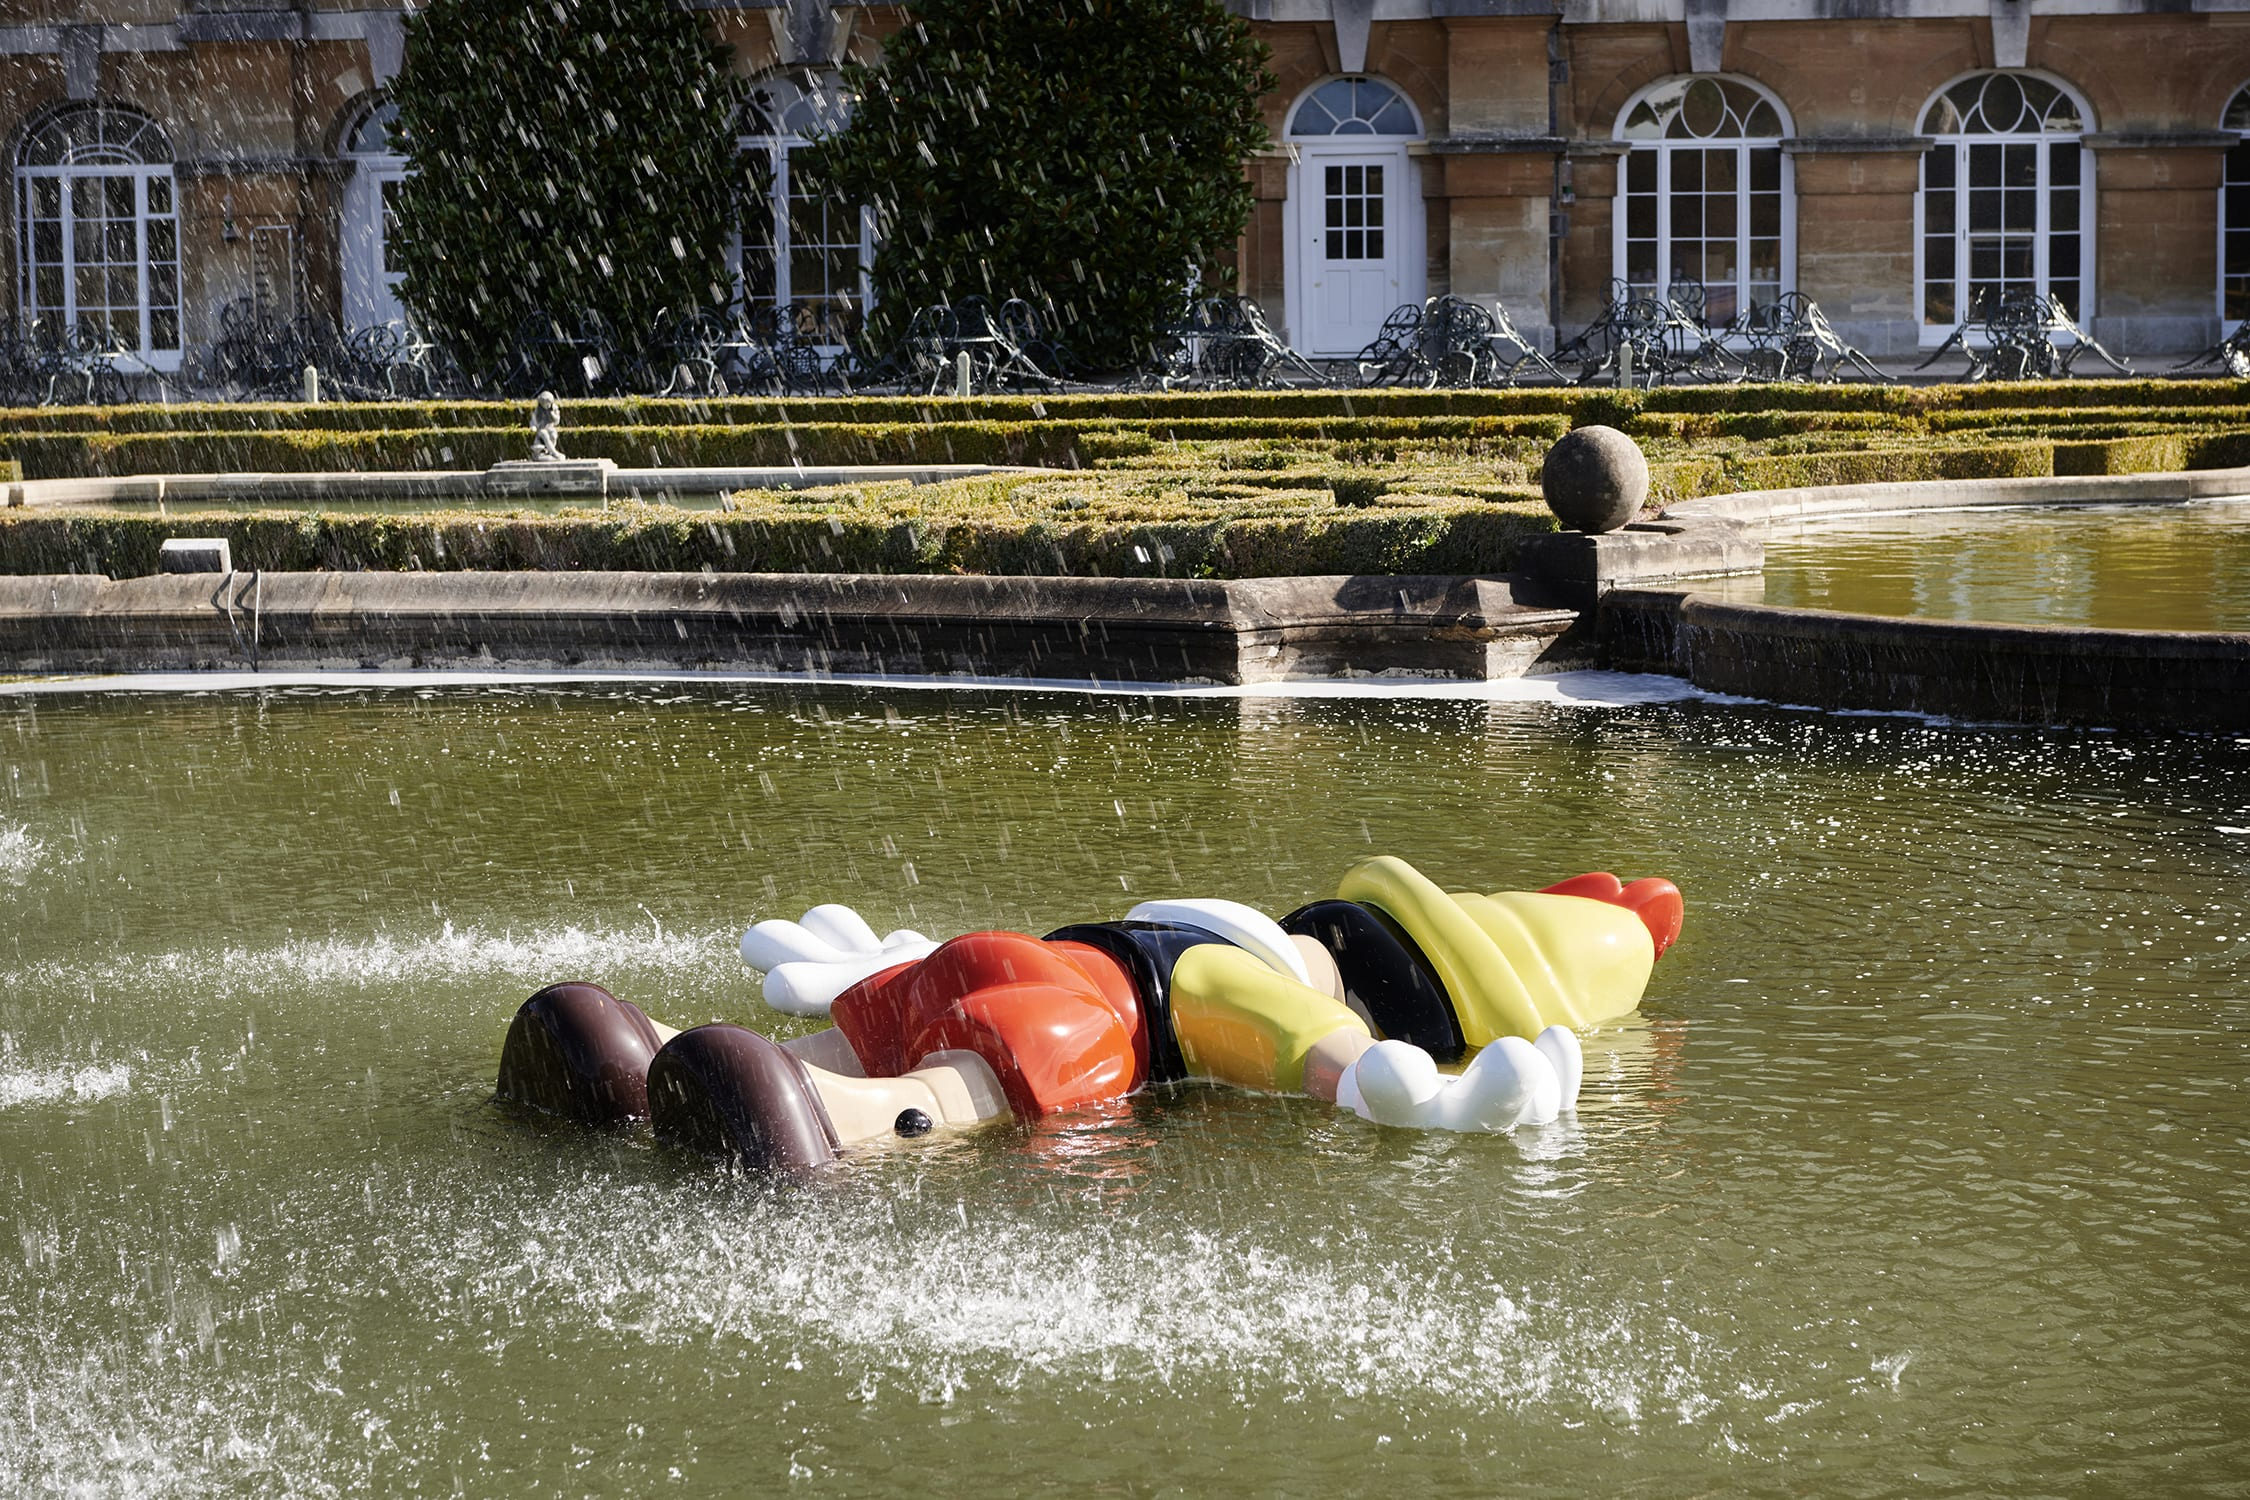 A statue of Pinocchio laying face-down in a fountain